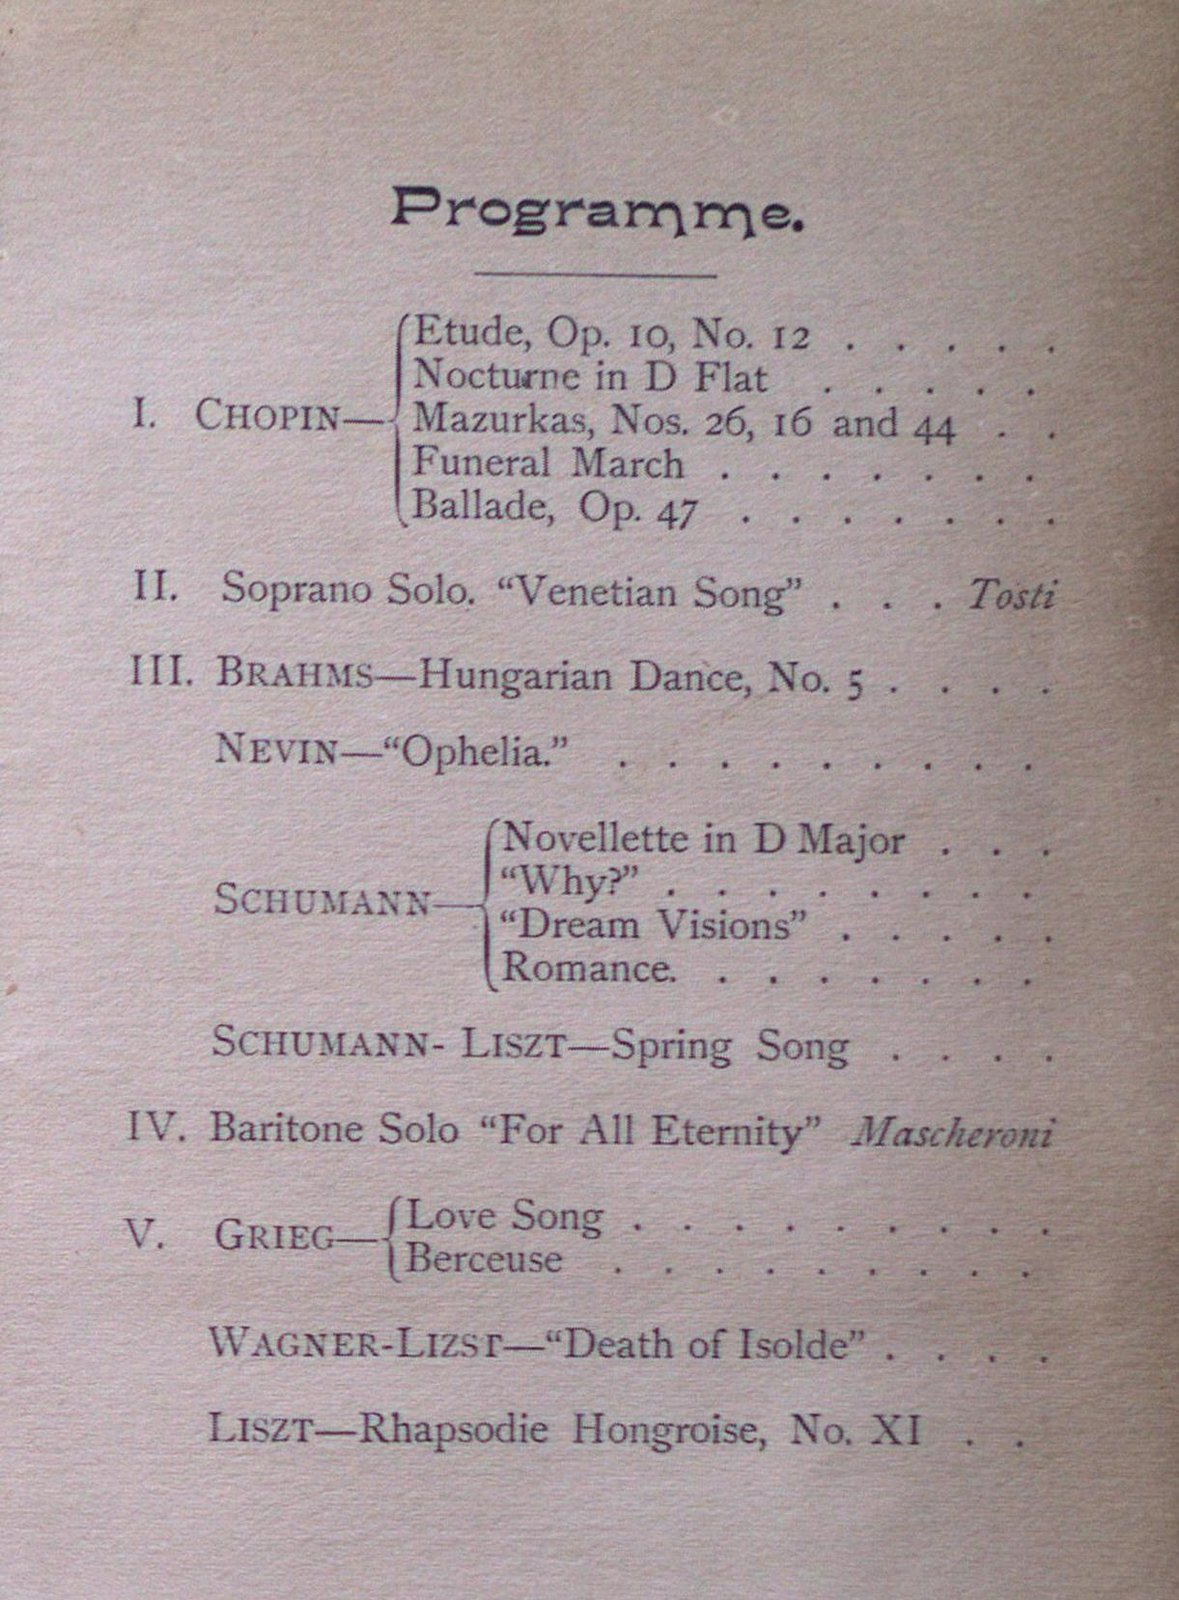 Teresa Vanderburgh's Musical Scrapbook #1 - Musical Circle Piano Recital Program